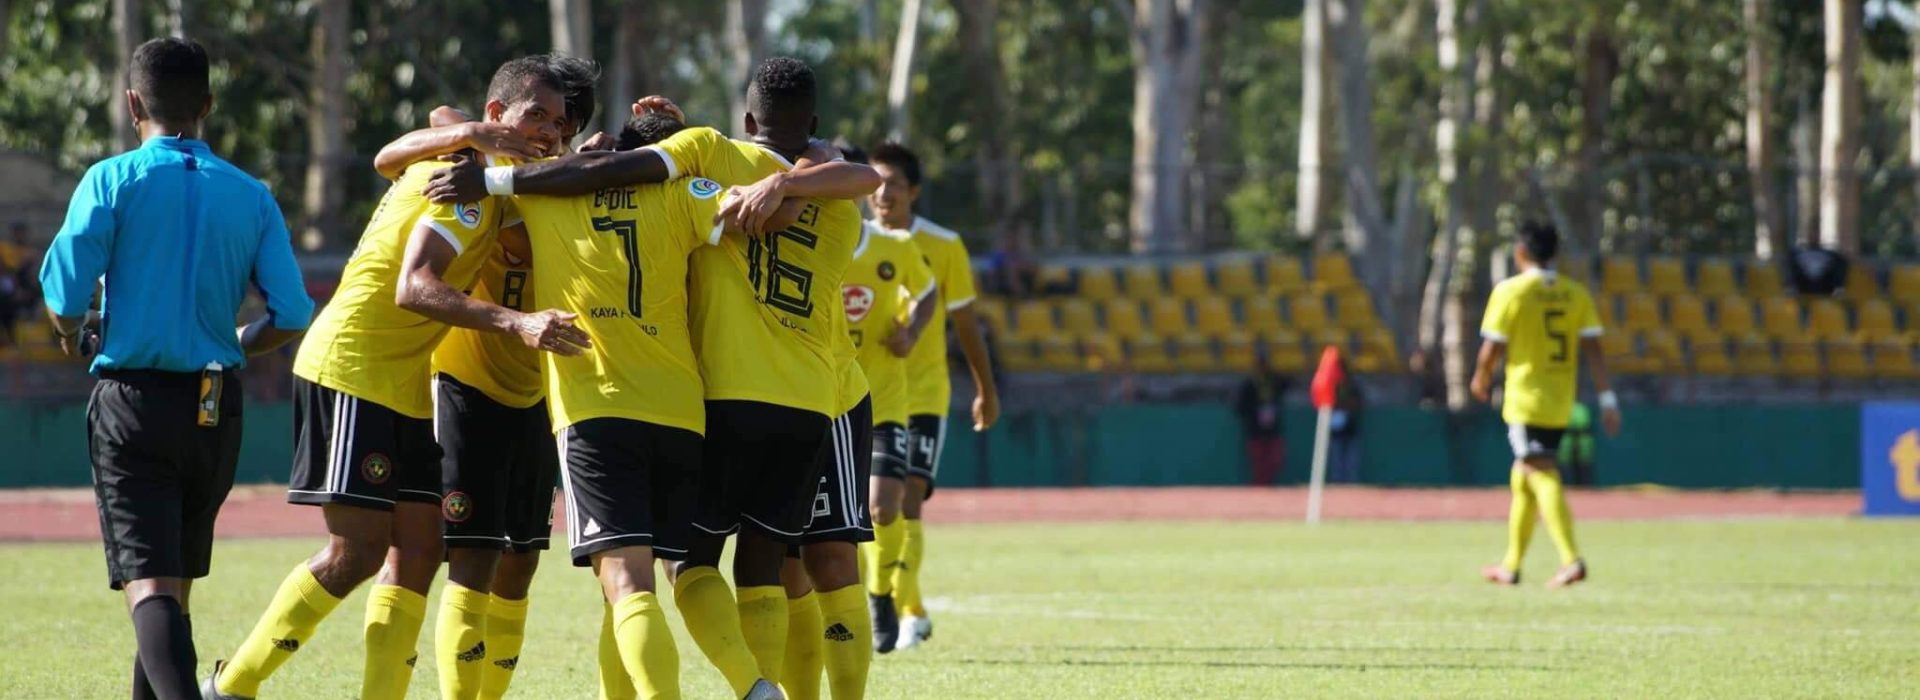 AFC Cup  Becamex Binh Duong 2-3 Ceres Negros  Kaya FC Iloilo 5-0 Home  United. Philippine professional ... c37911a17